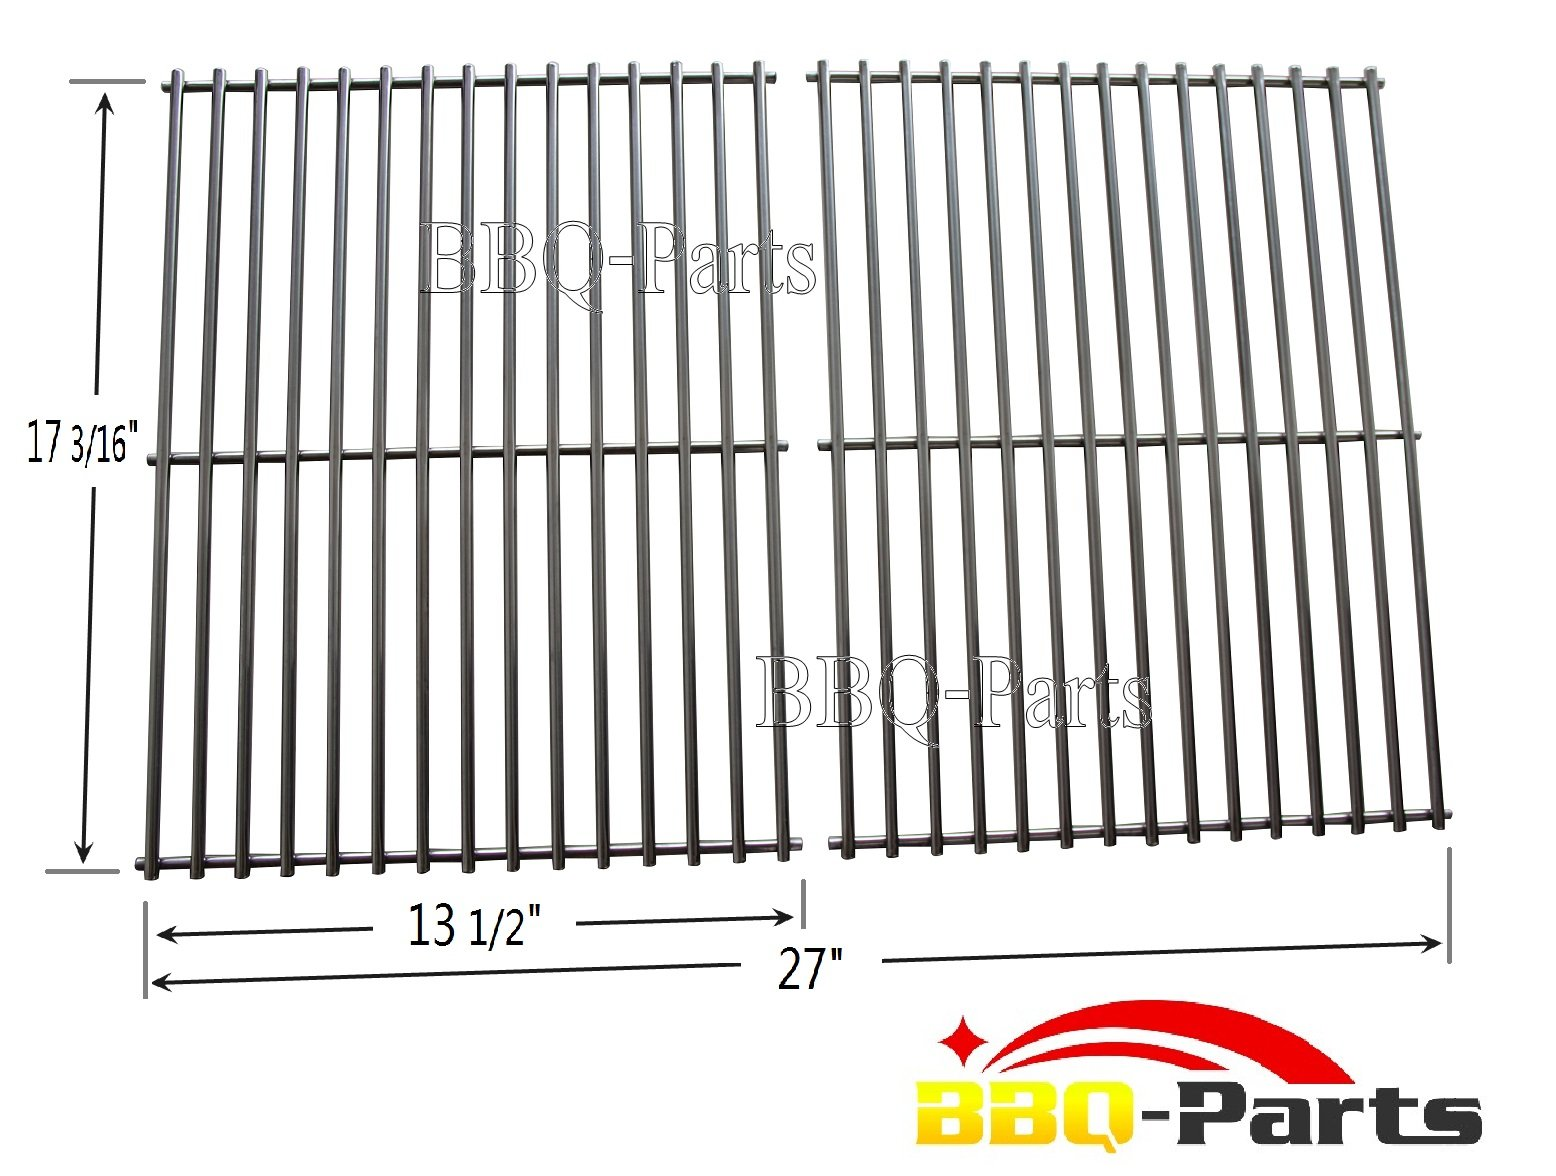 Bbq parts sci stainless steel rod cooking grid